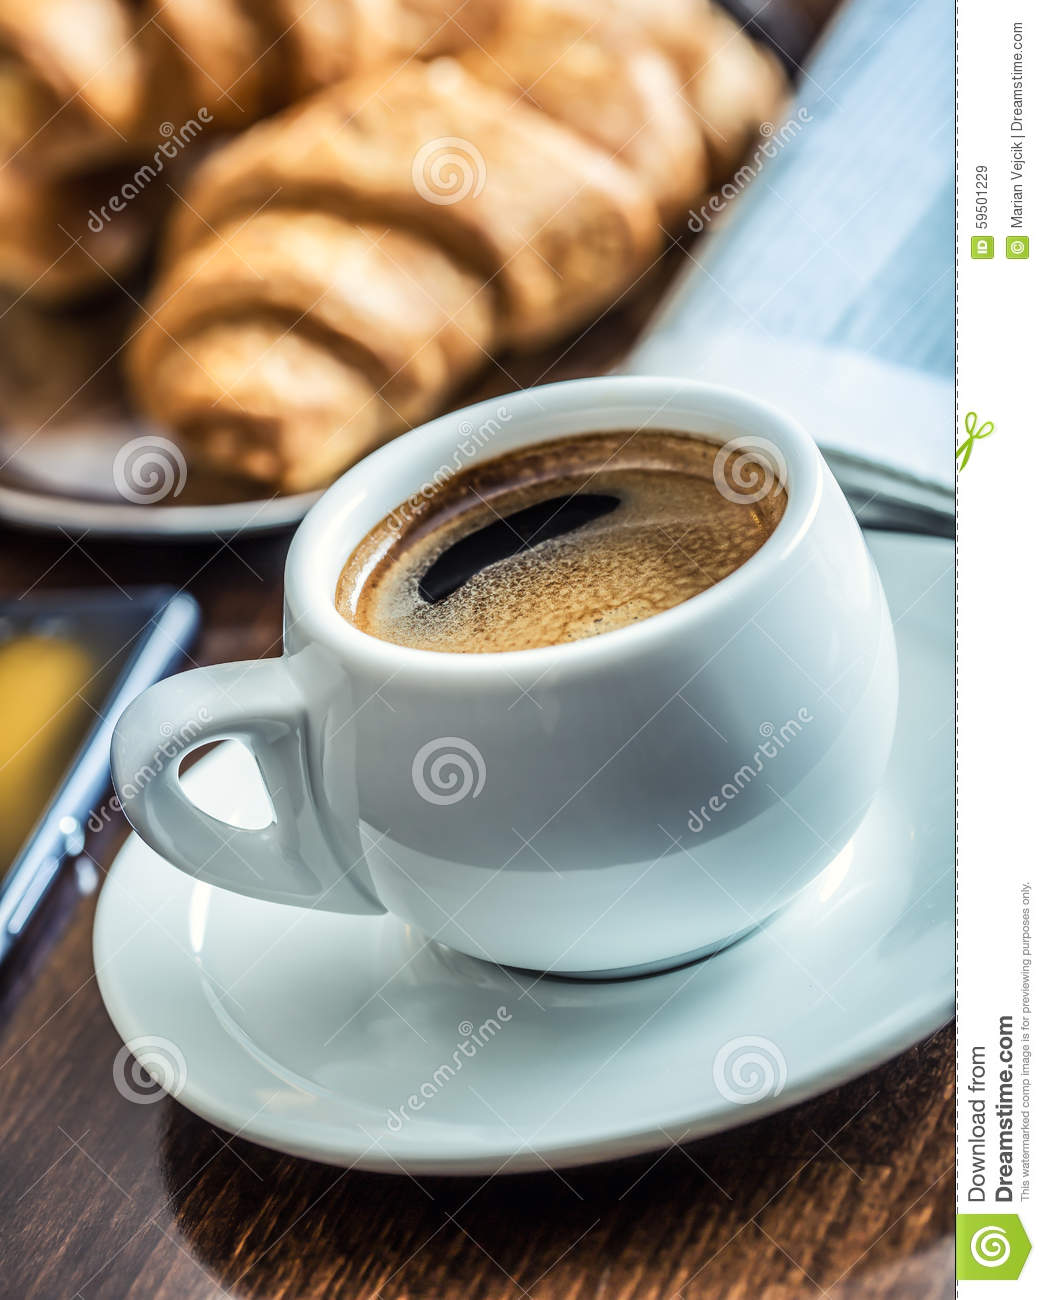 Coffee Break Business Cup Of Coffee Mobile Phone And